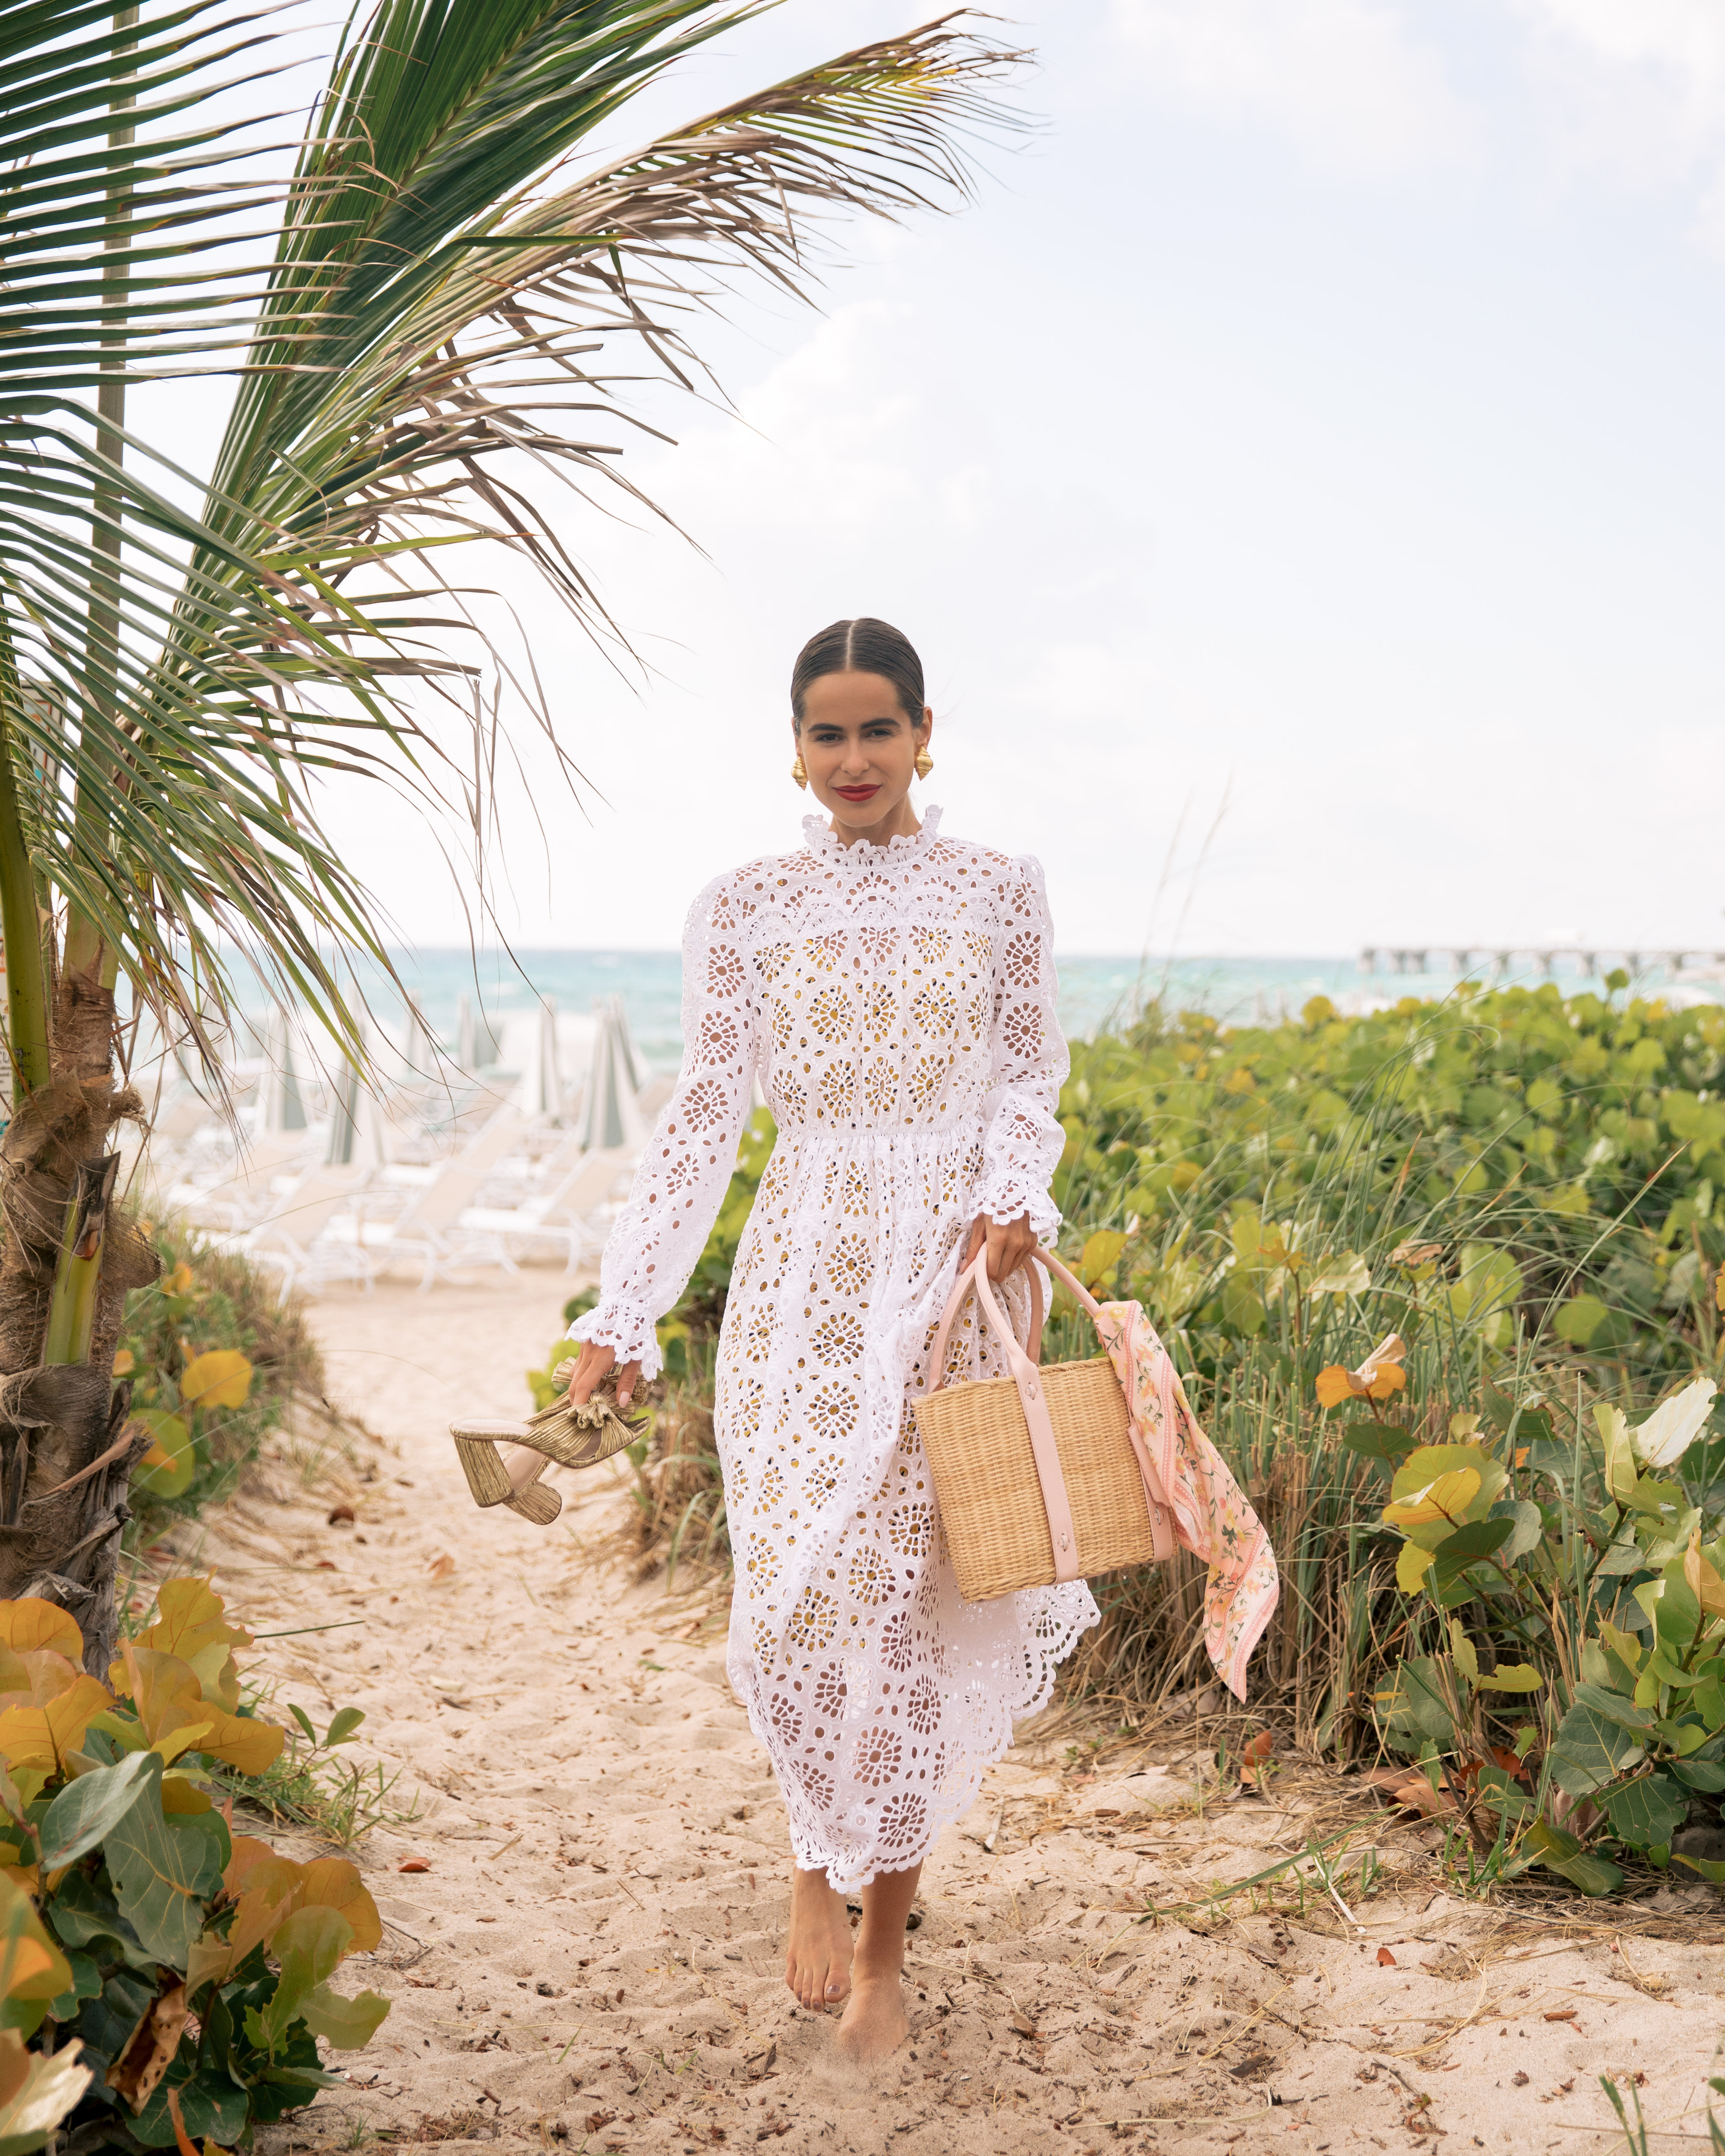 Style Blogger Stephanie Hill from The Style Bungalow shares My Mini Staycation